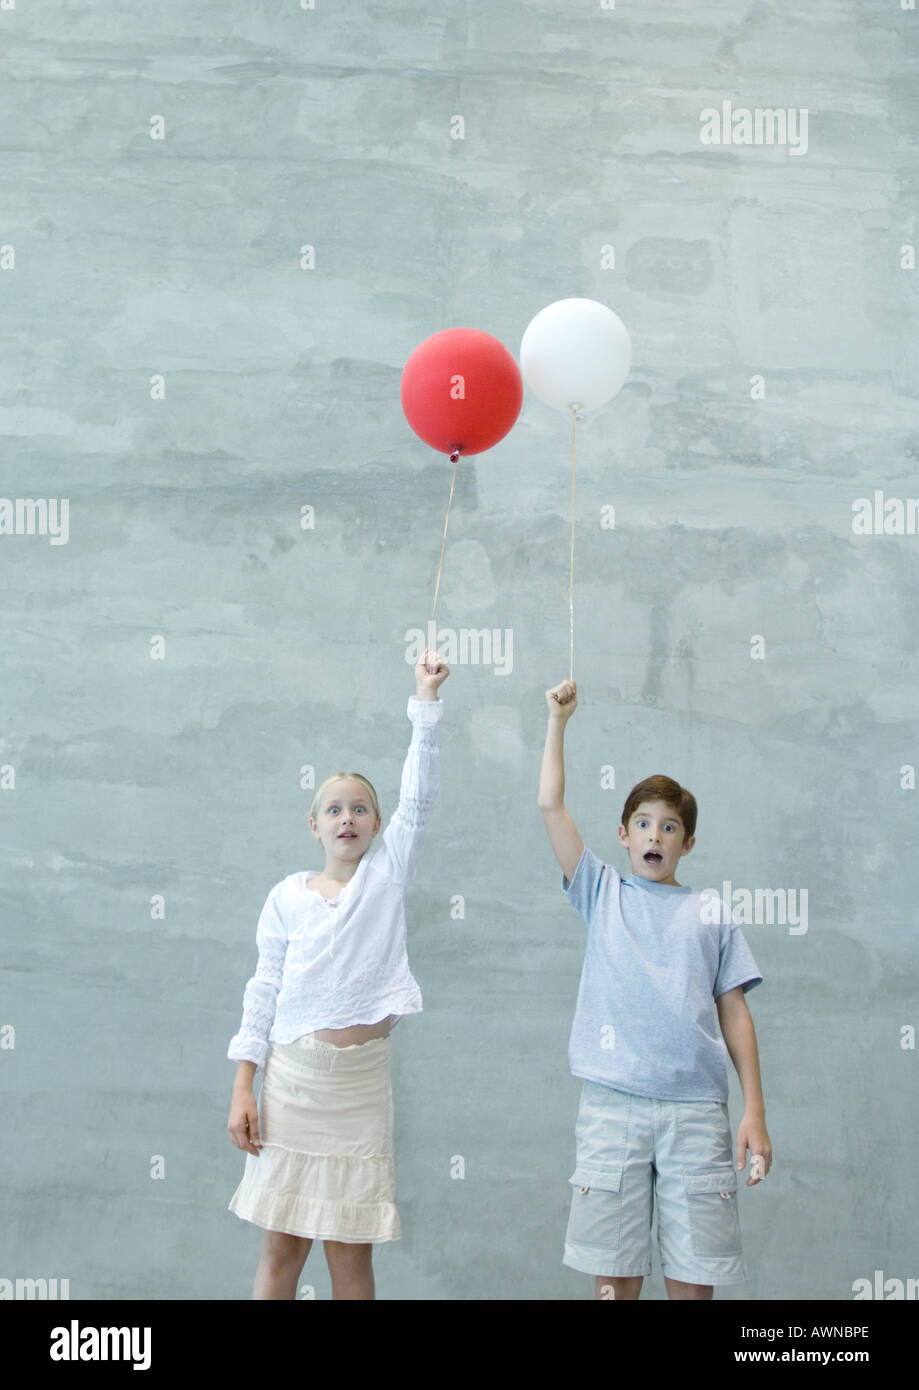 Two children holding balloons, making faces - Stock Image